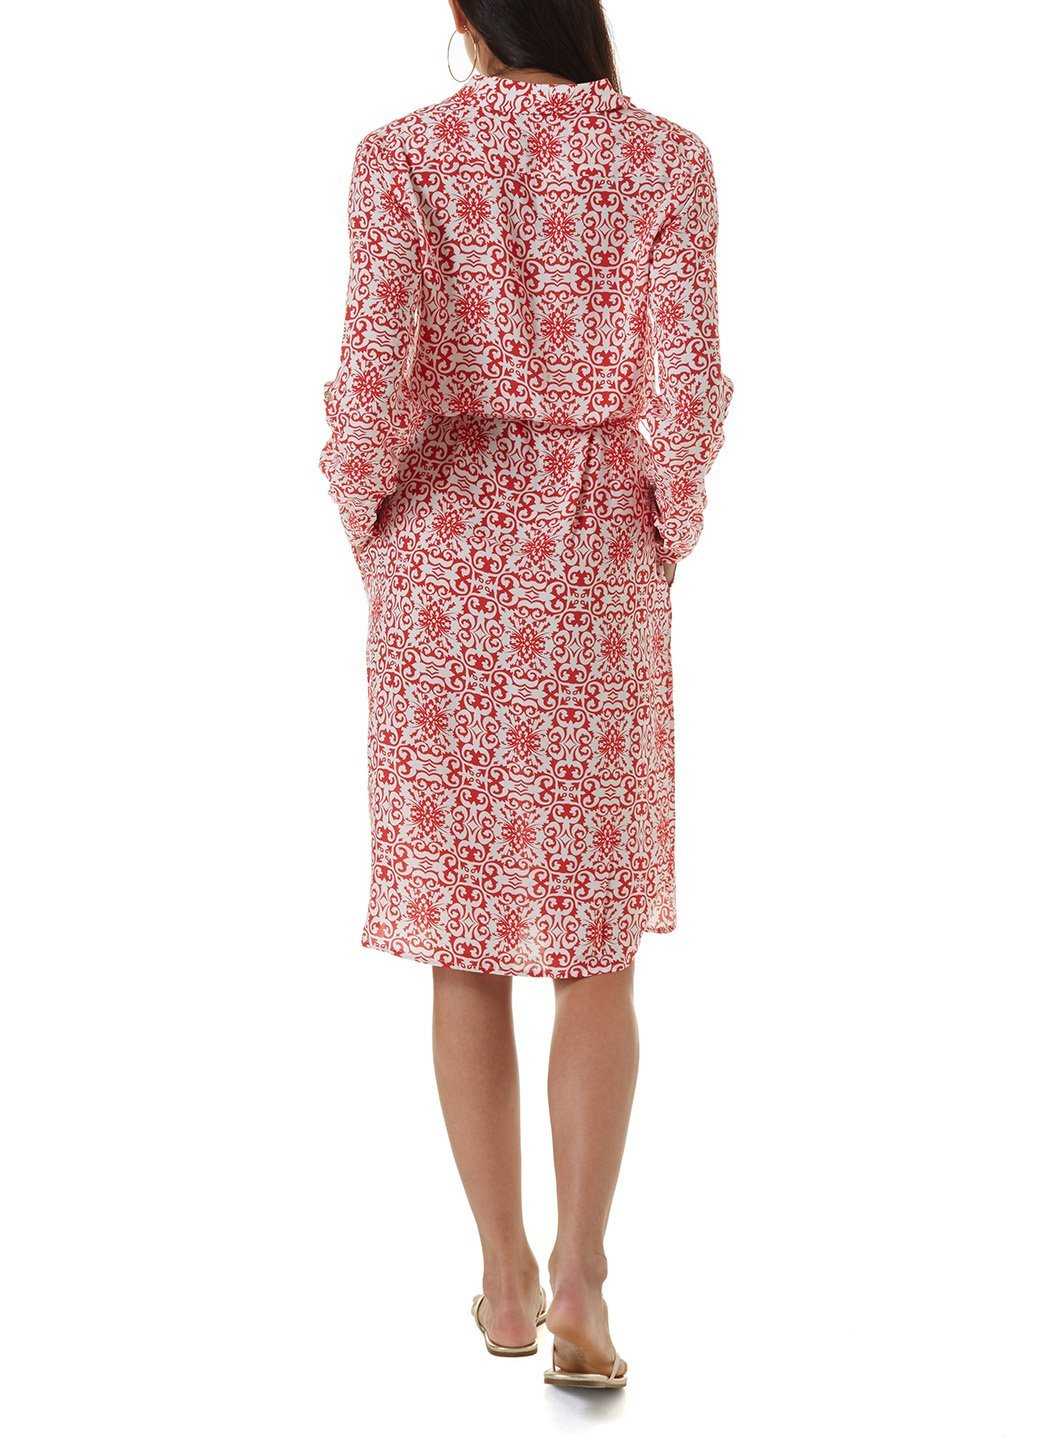 lois amalfi red short shirt dress